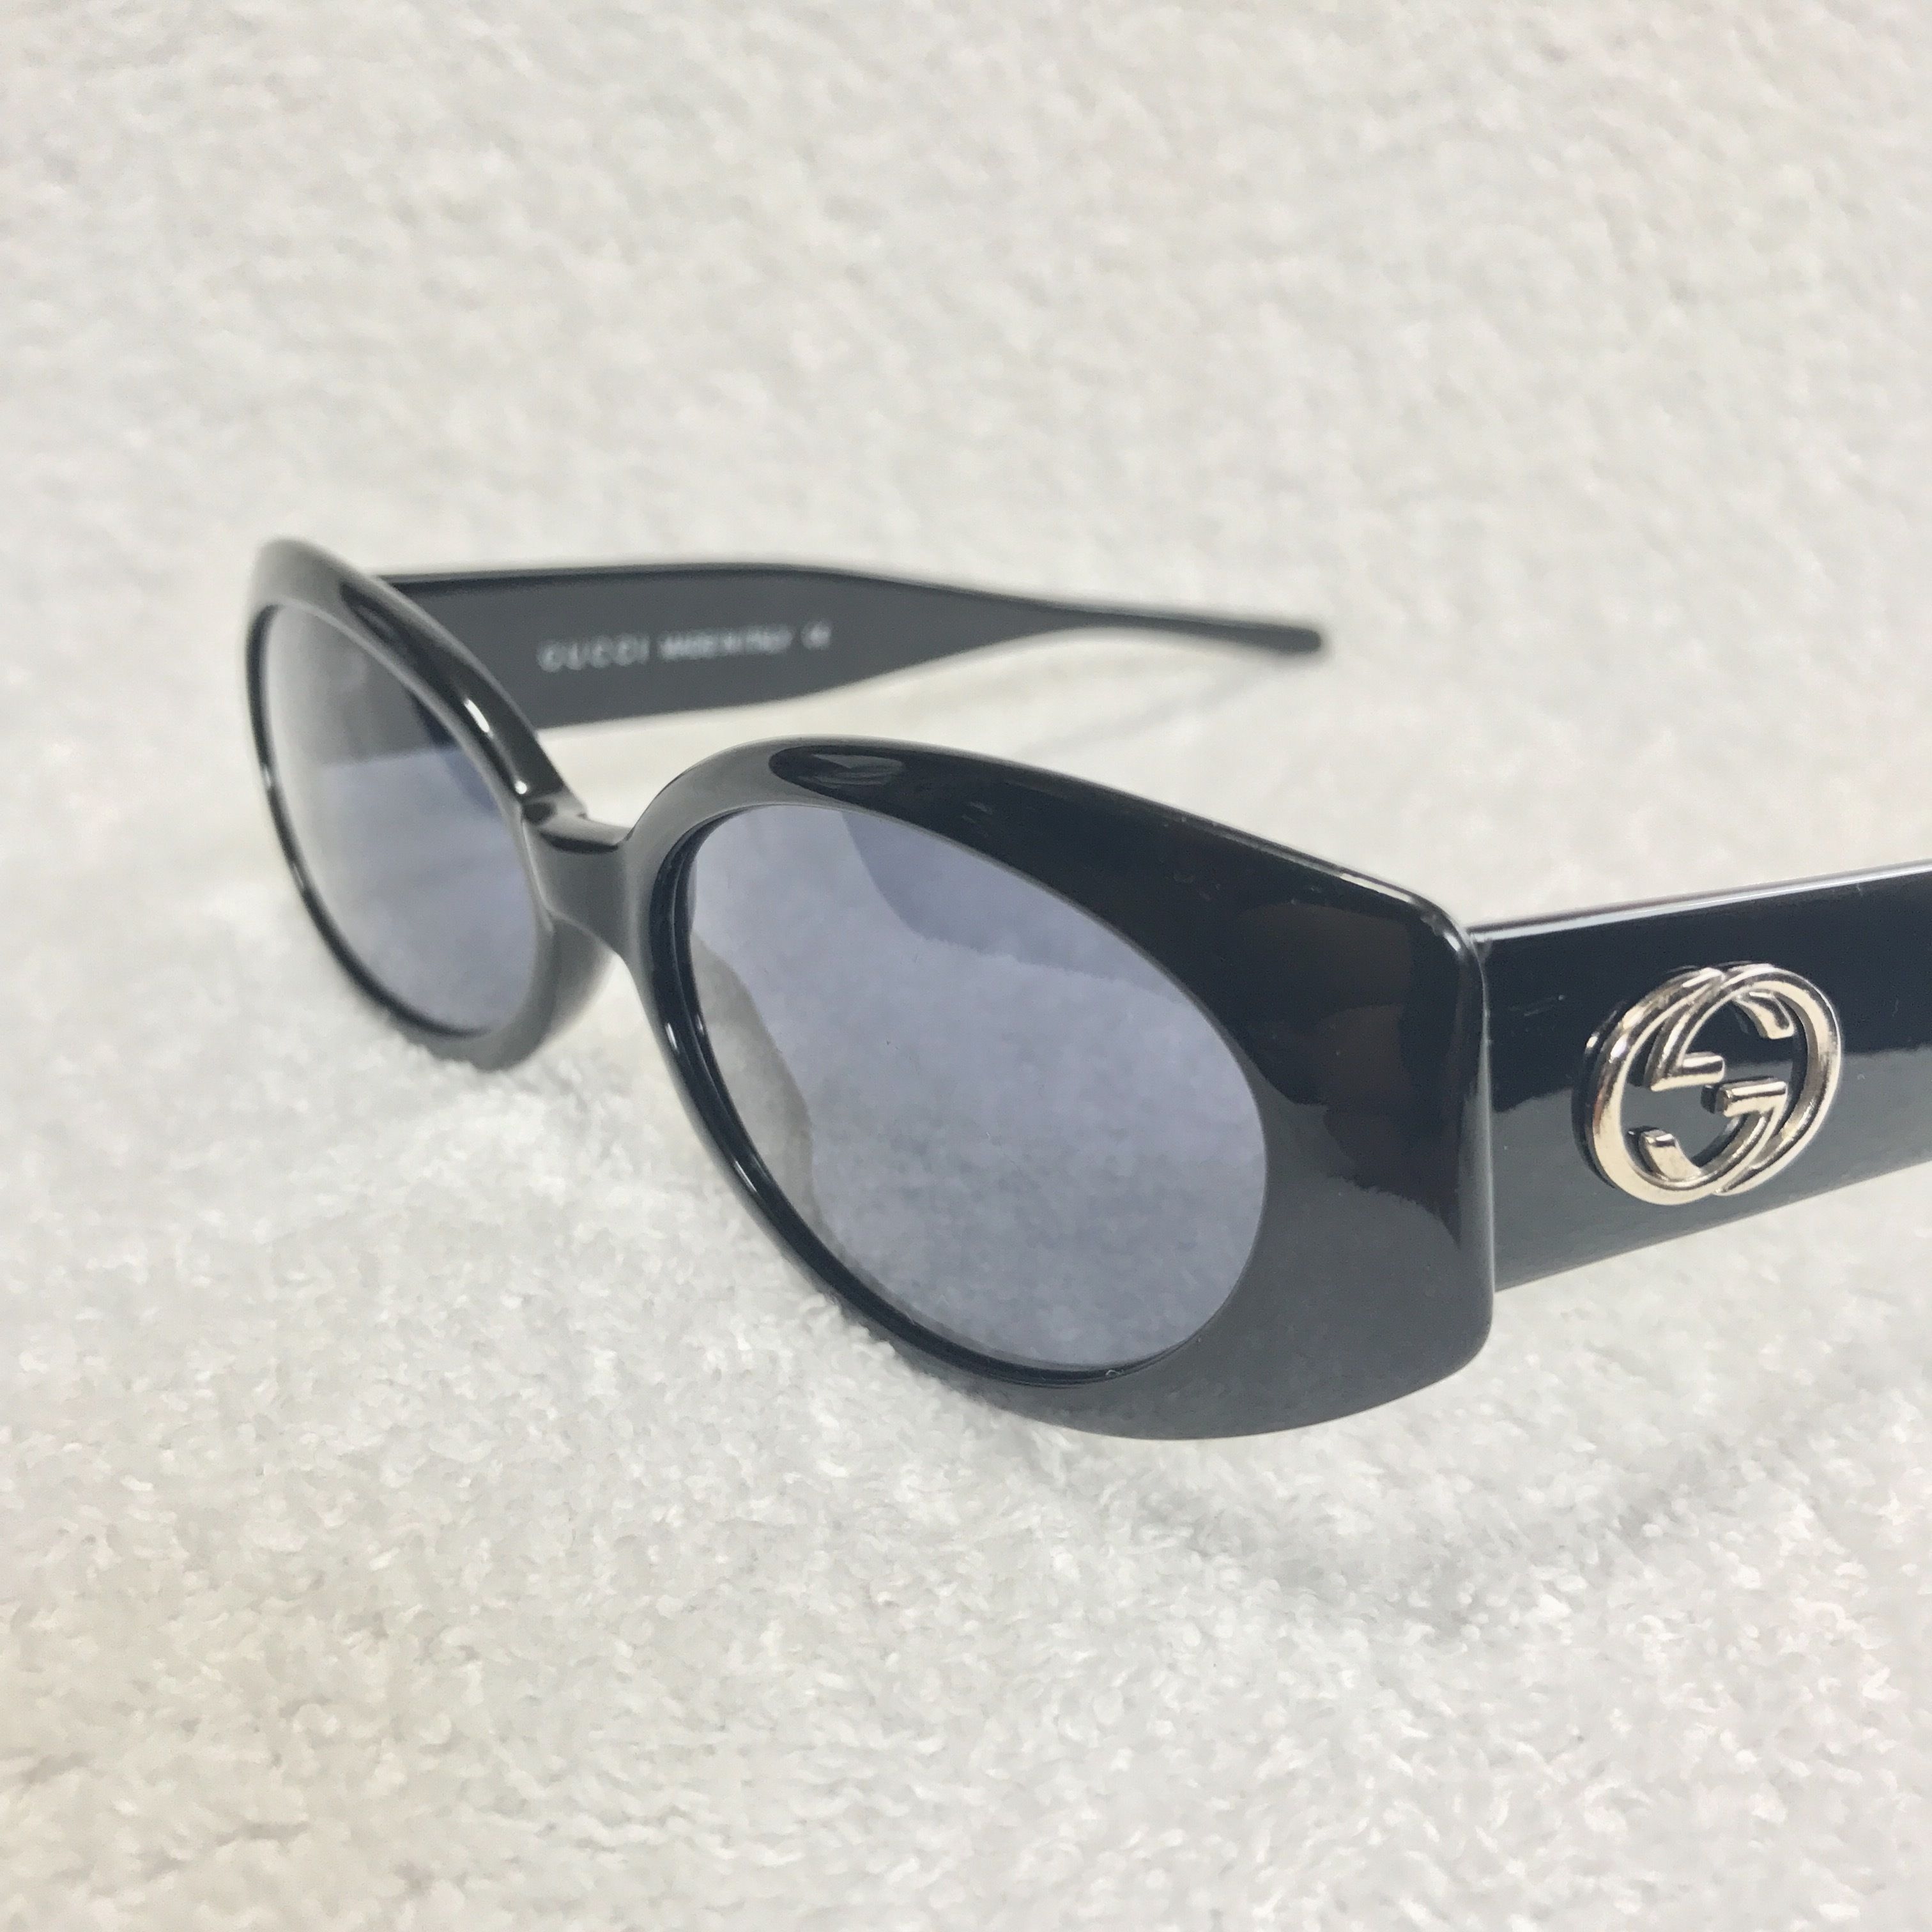 VINTAGE GUCCI ROUND SUNGLASSES BLACK×BLUE